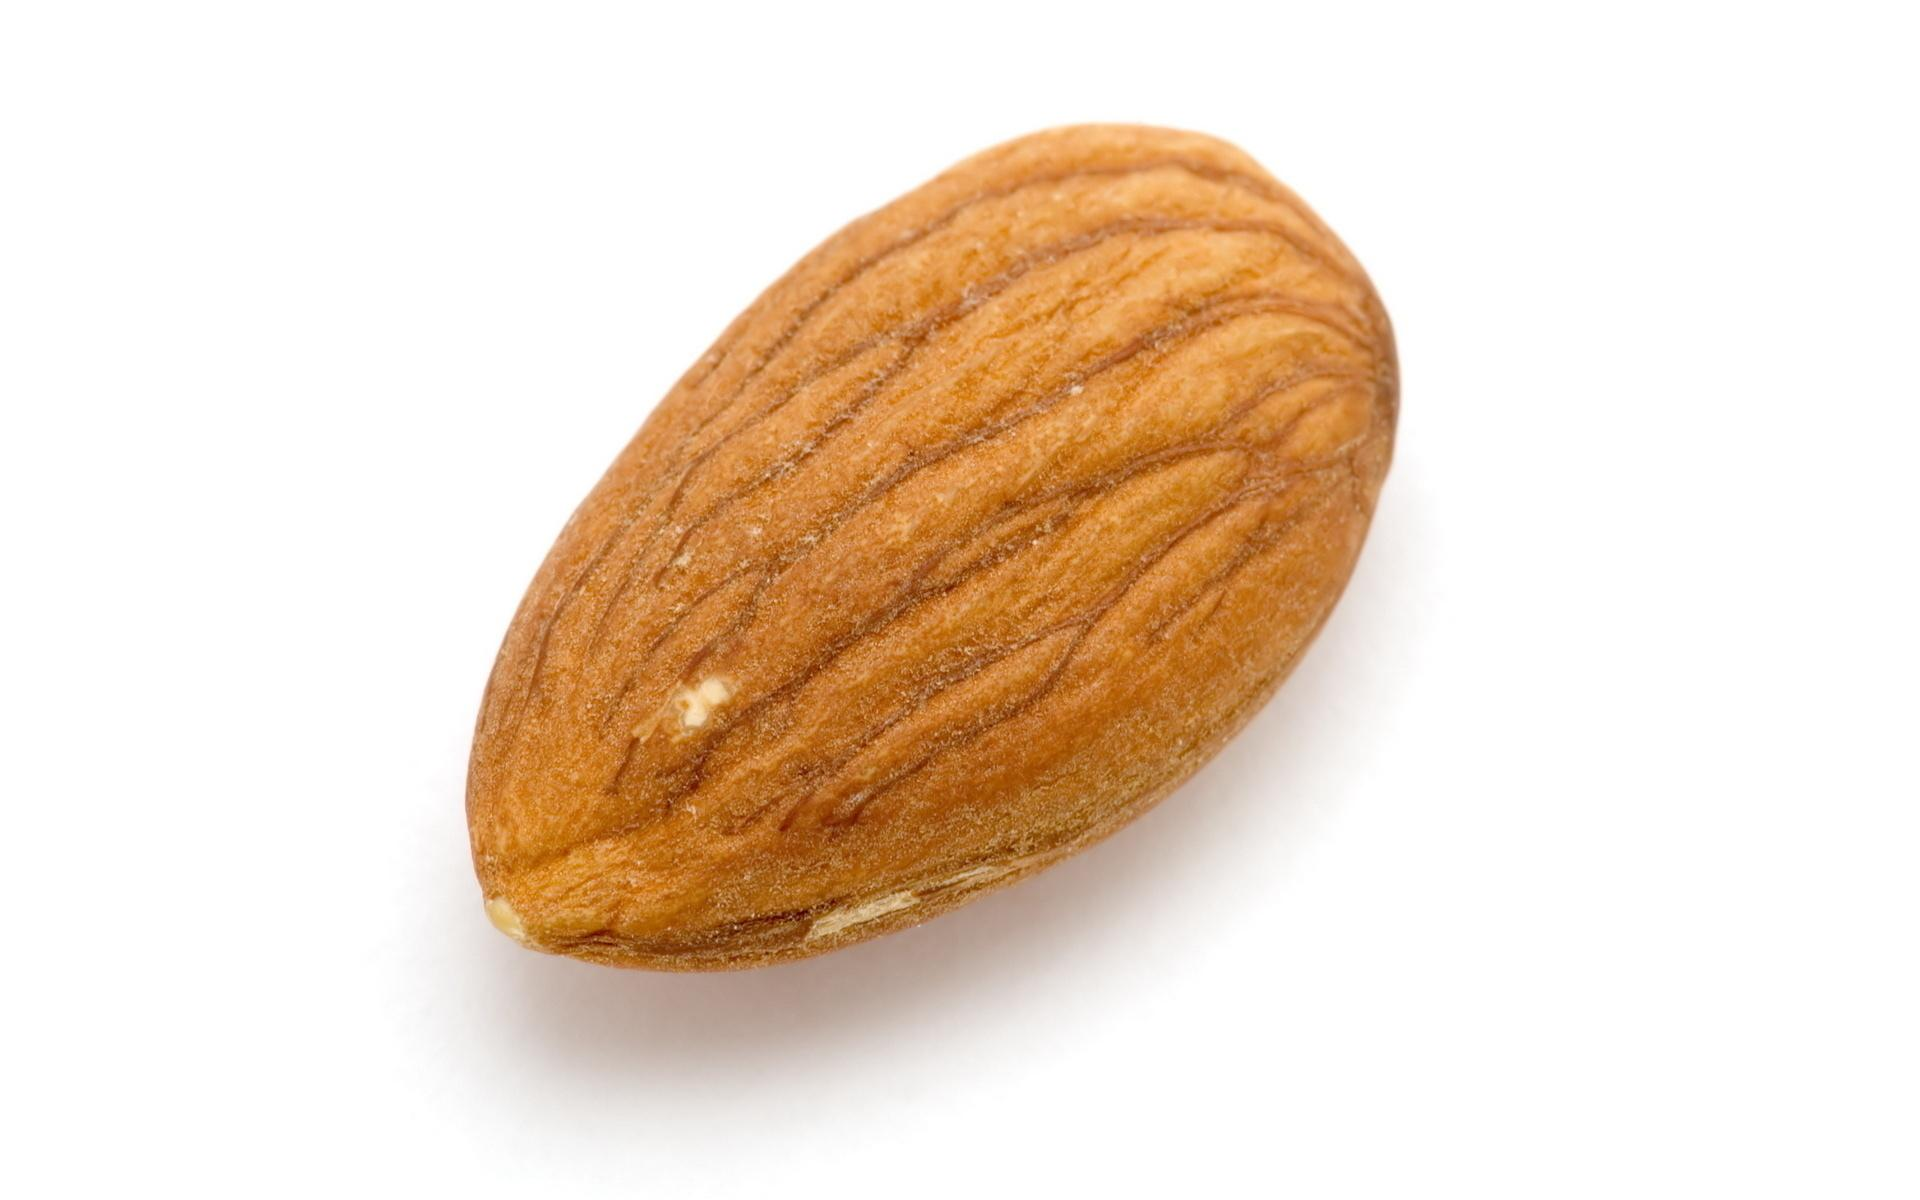 Almond wallpapers HD quality